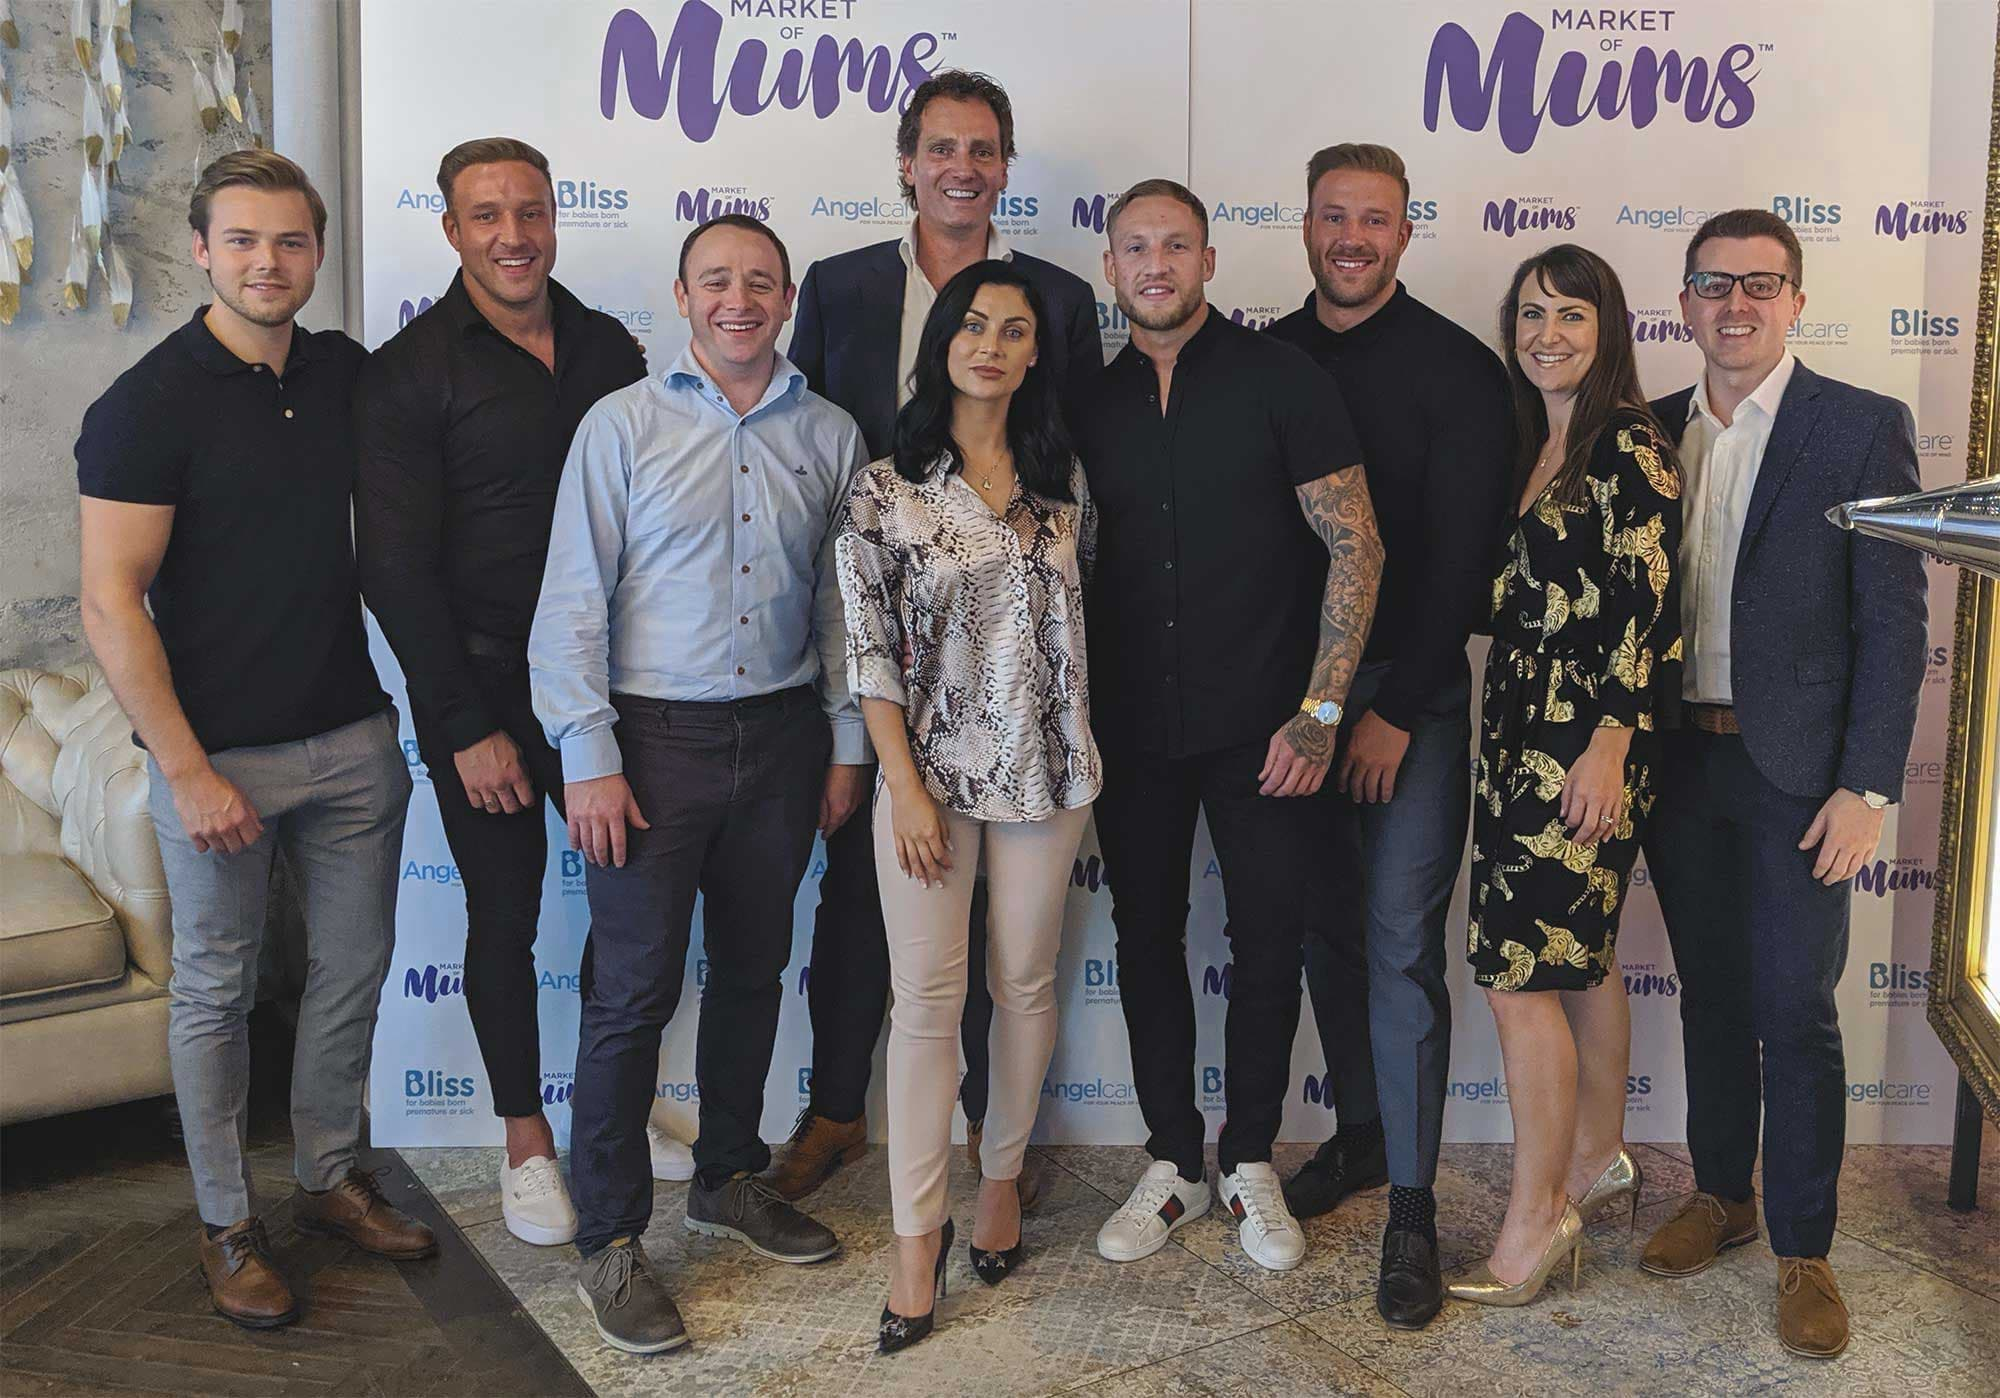 A group photo at the Market of Mums launch party